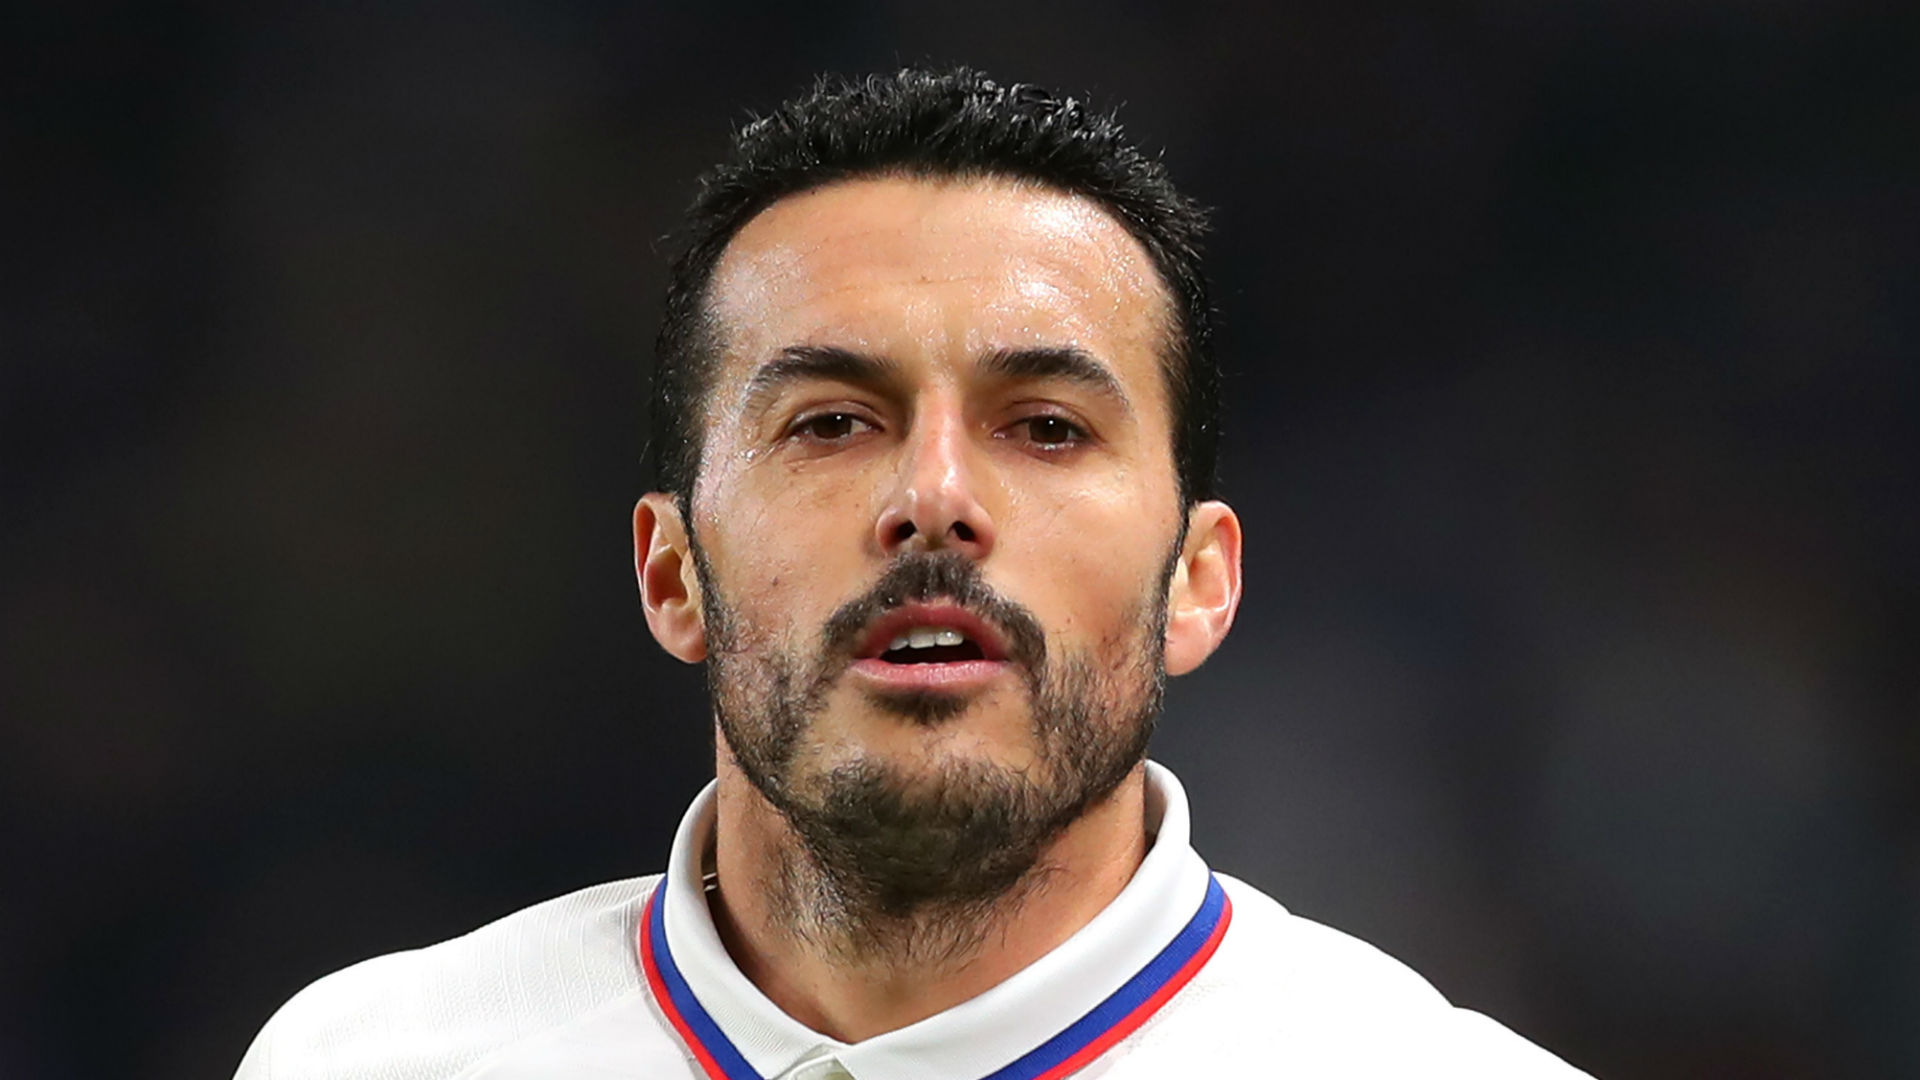 Pedro undergoes shoulder surgery ahead of expected Roma move